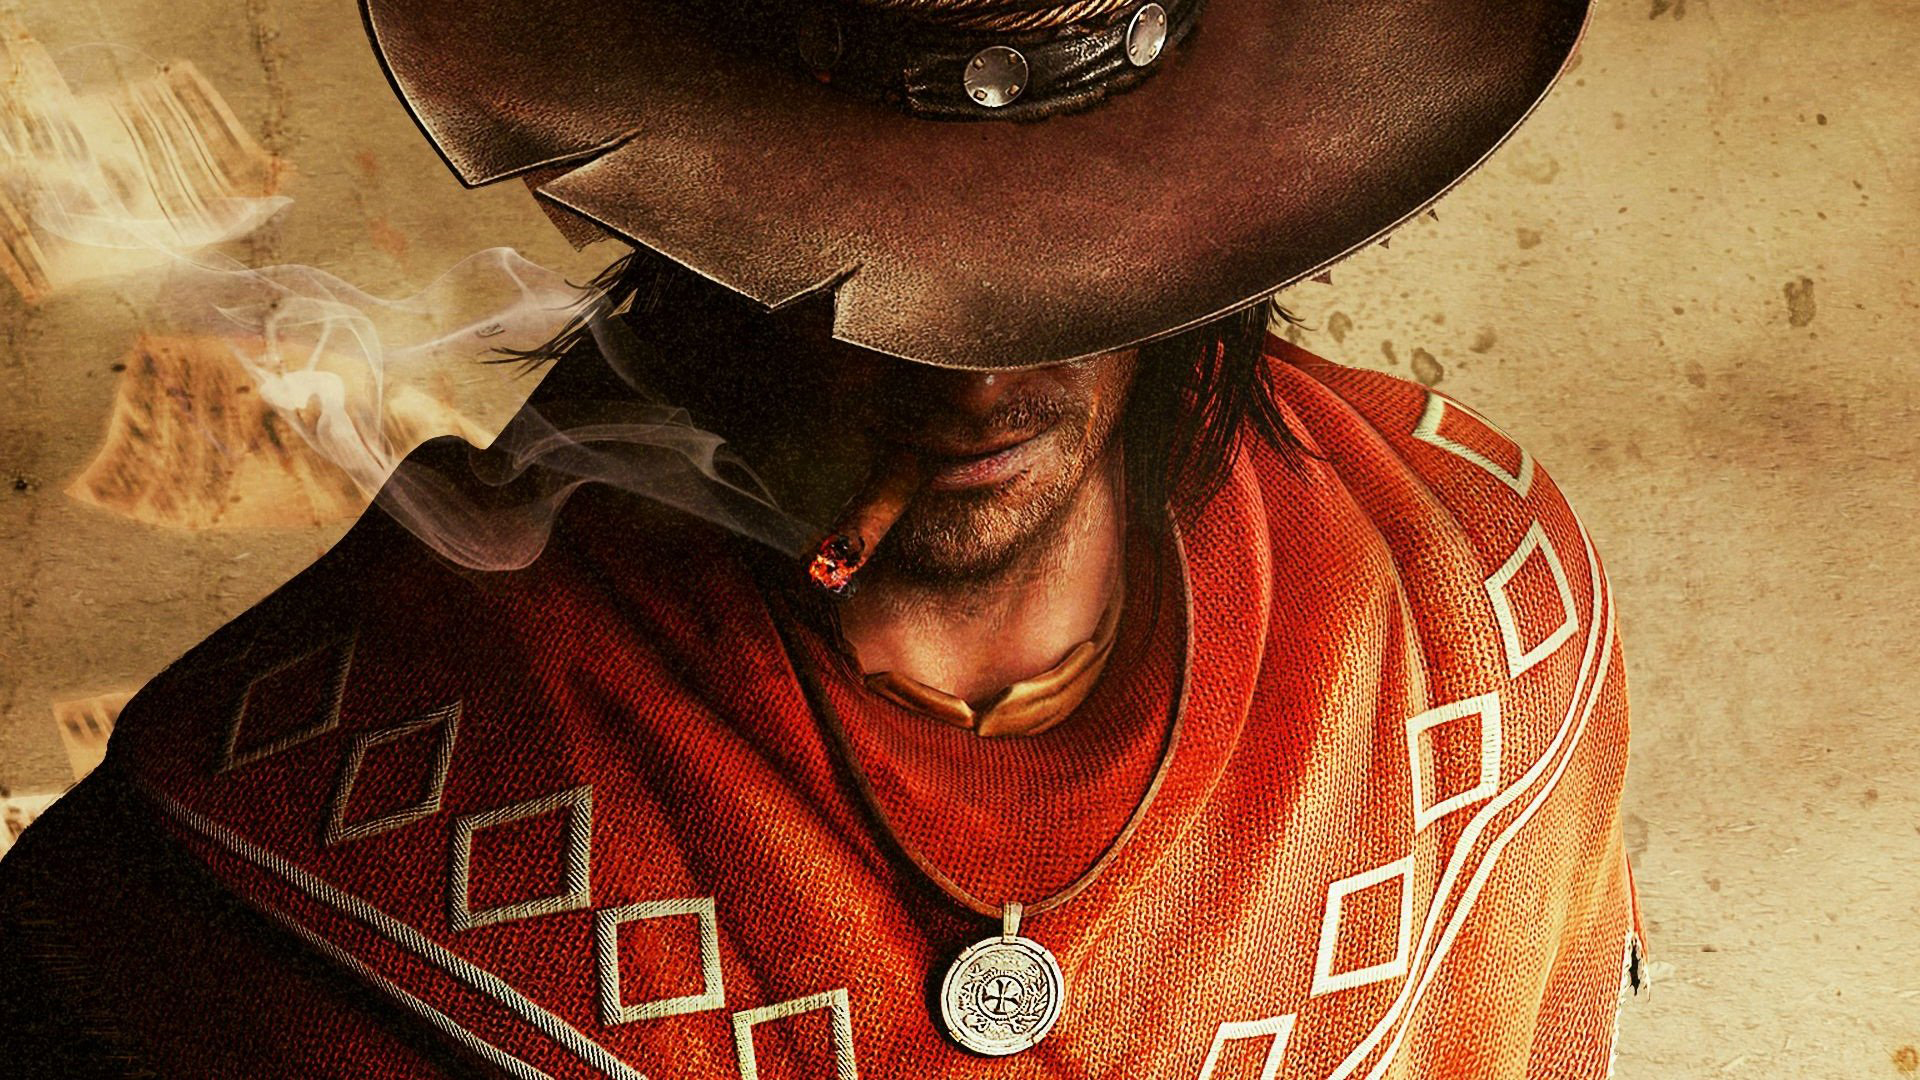 The Call of Juarez series has a new publisher through Techland screenshot